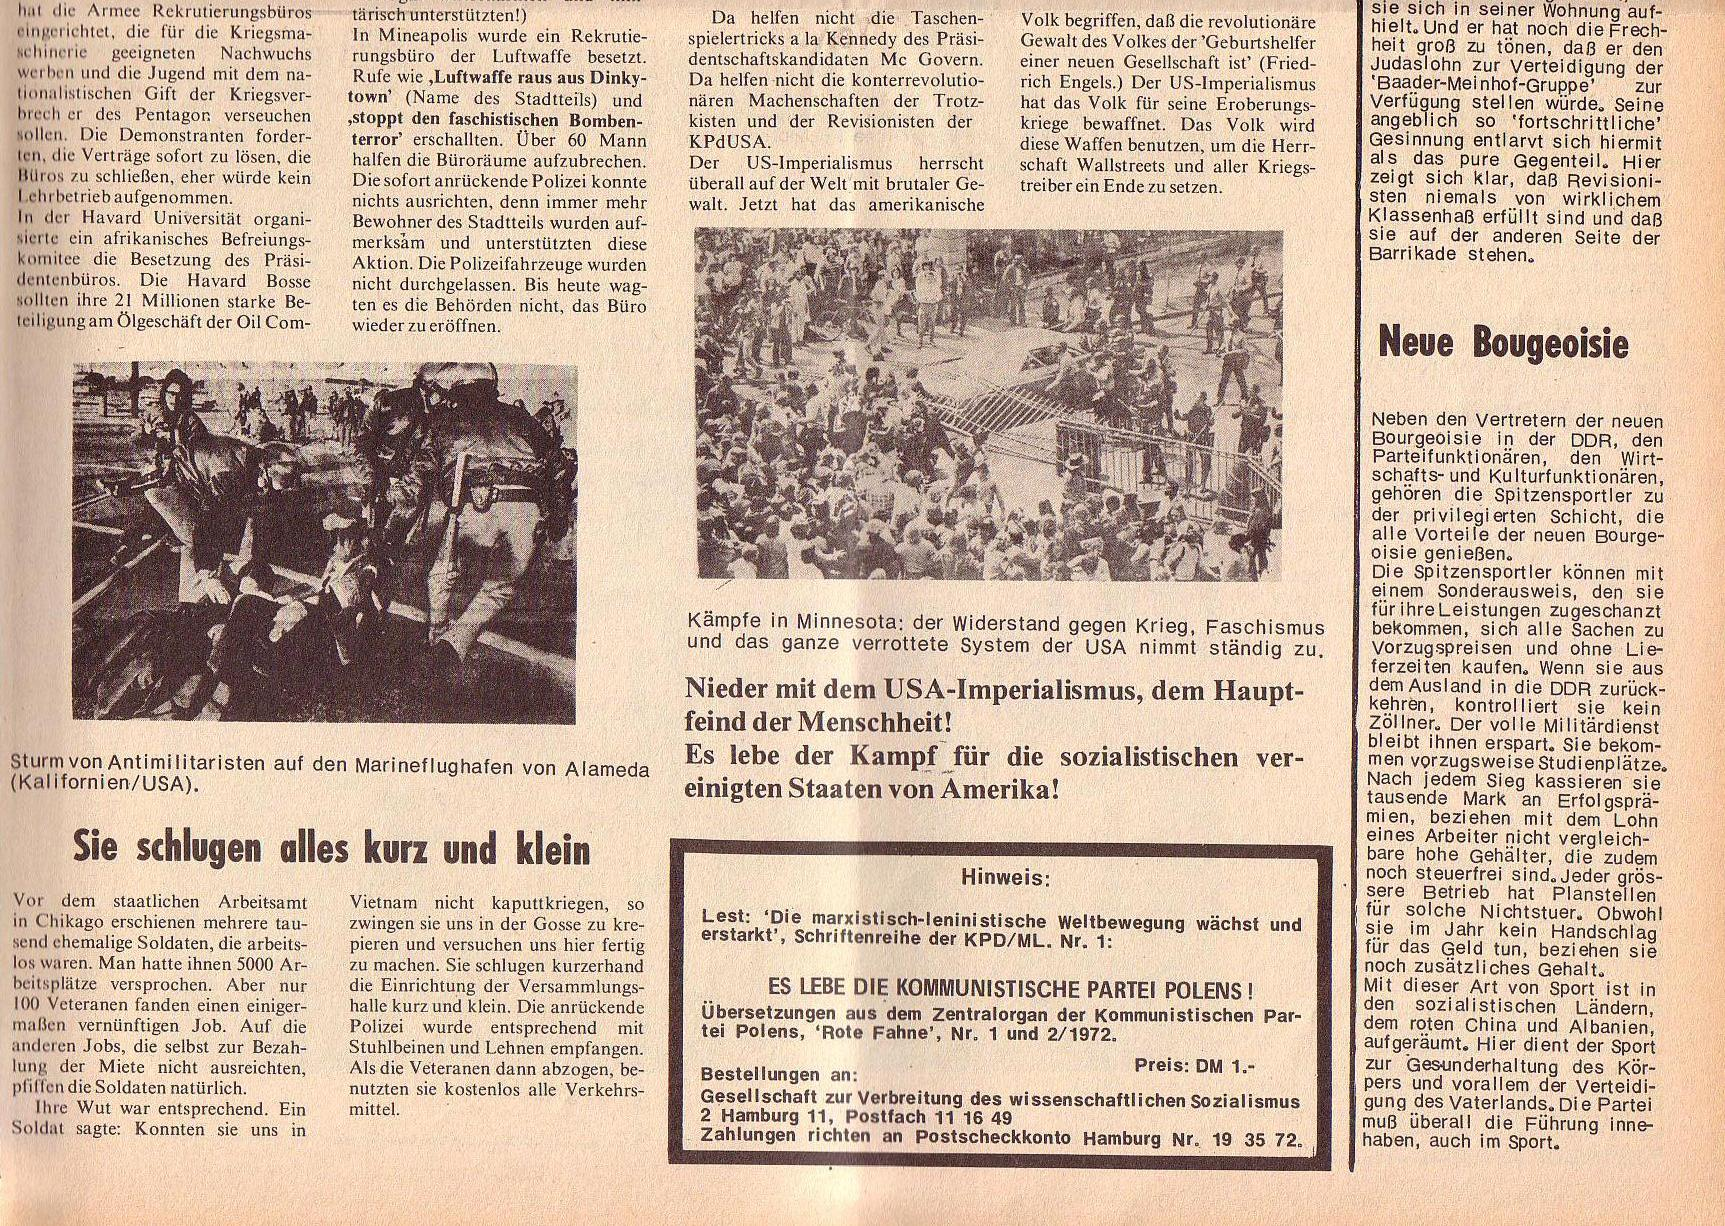 Roter Morgen, 6. Jg., 14. August 1972, Nr. 16, Seite 7b